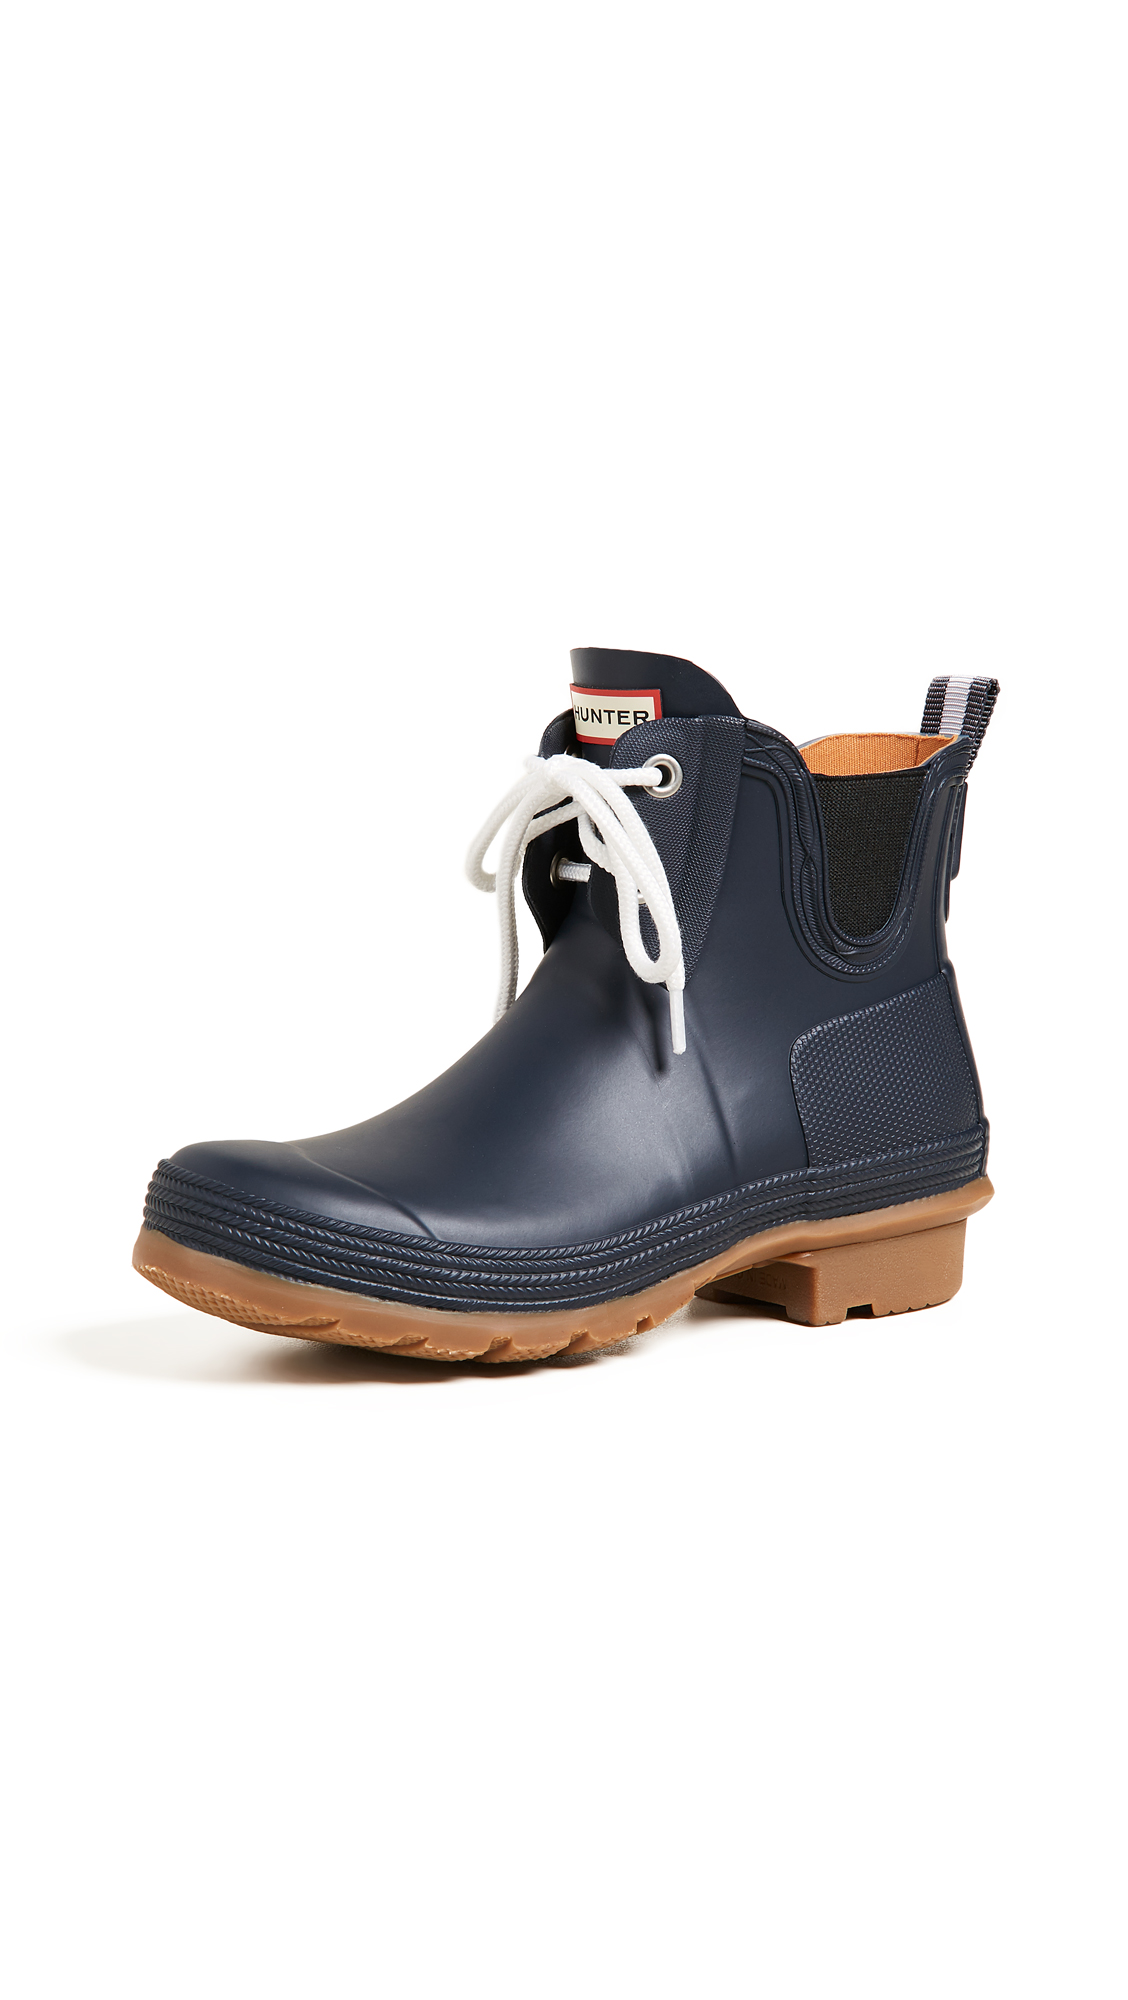 Hunter Boots Original Sissinghurst Lace Up Boots - Navy/Gum